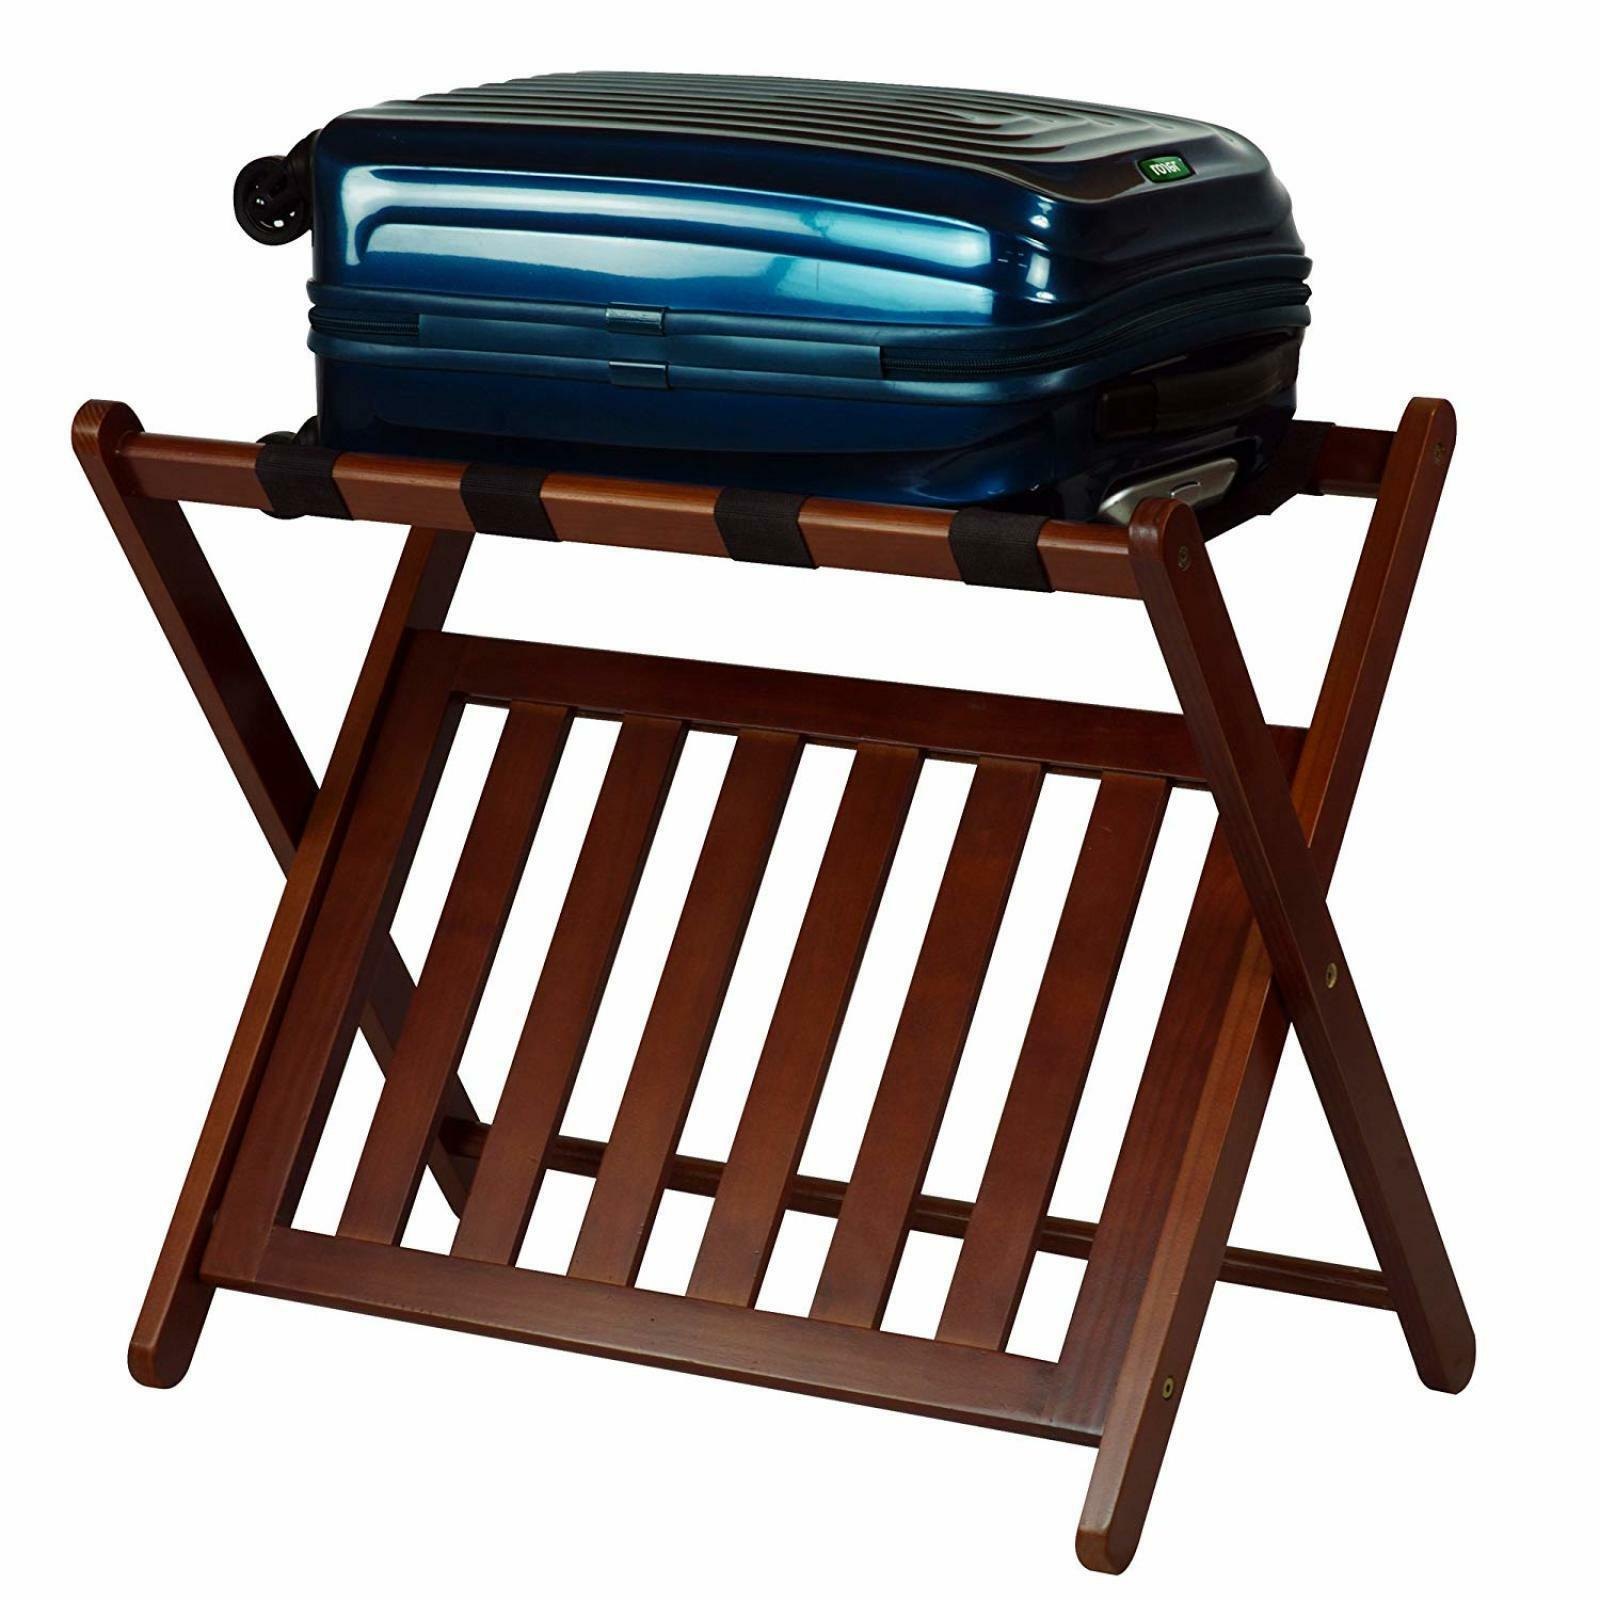 Details about Wood Folding Luggage Rack with Shelf Suitcase Holder Bedroom  Guestroom Storage